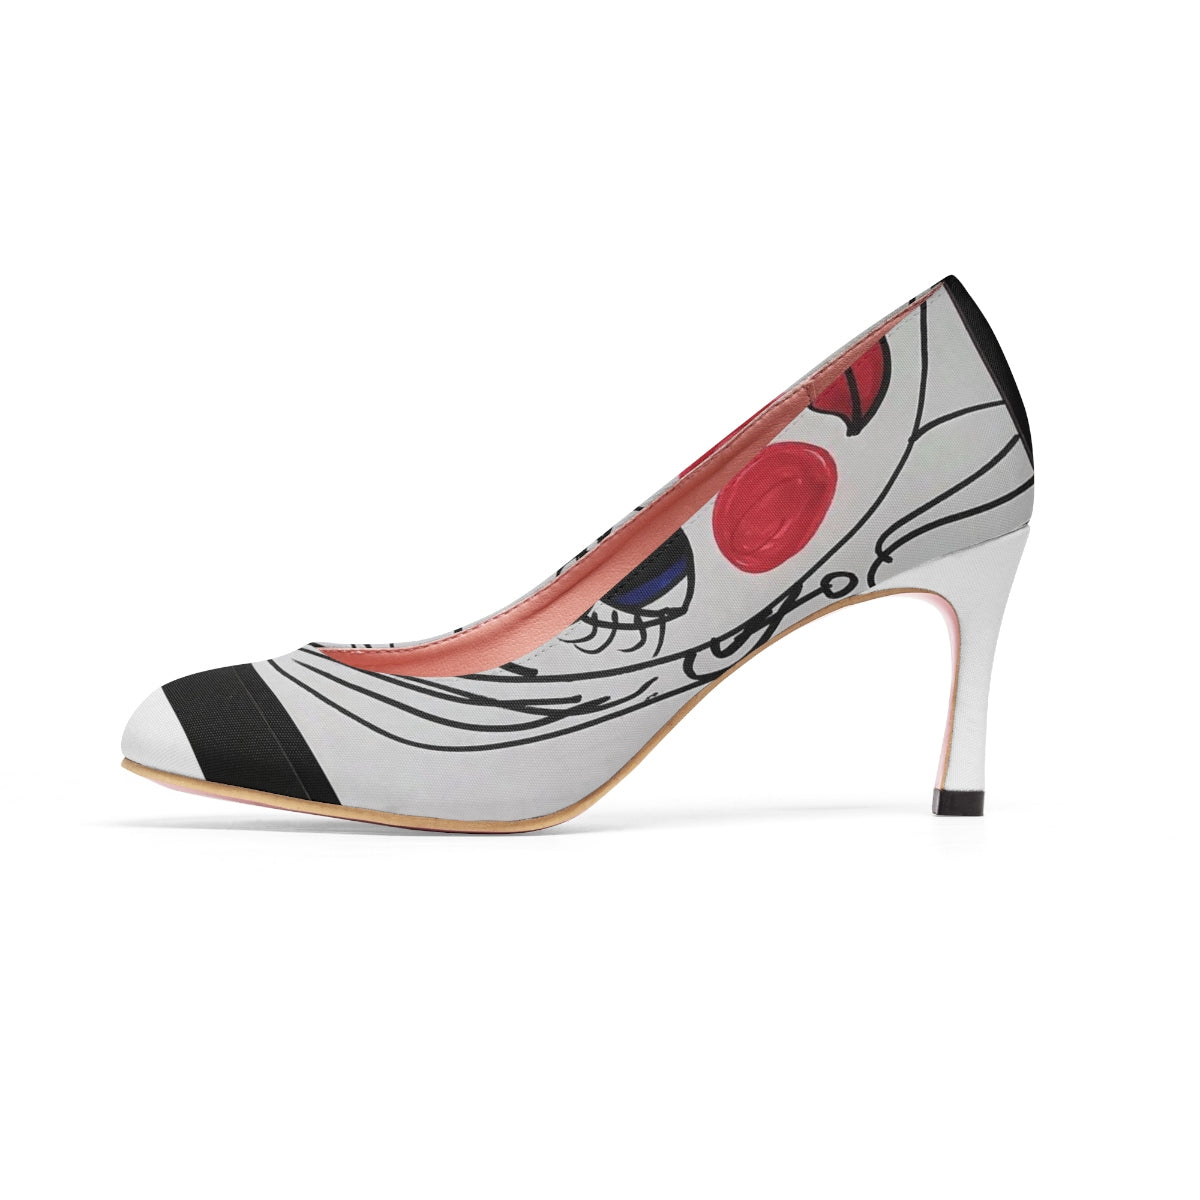 Rosey Cheeks Women's High Heels